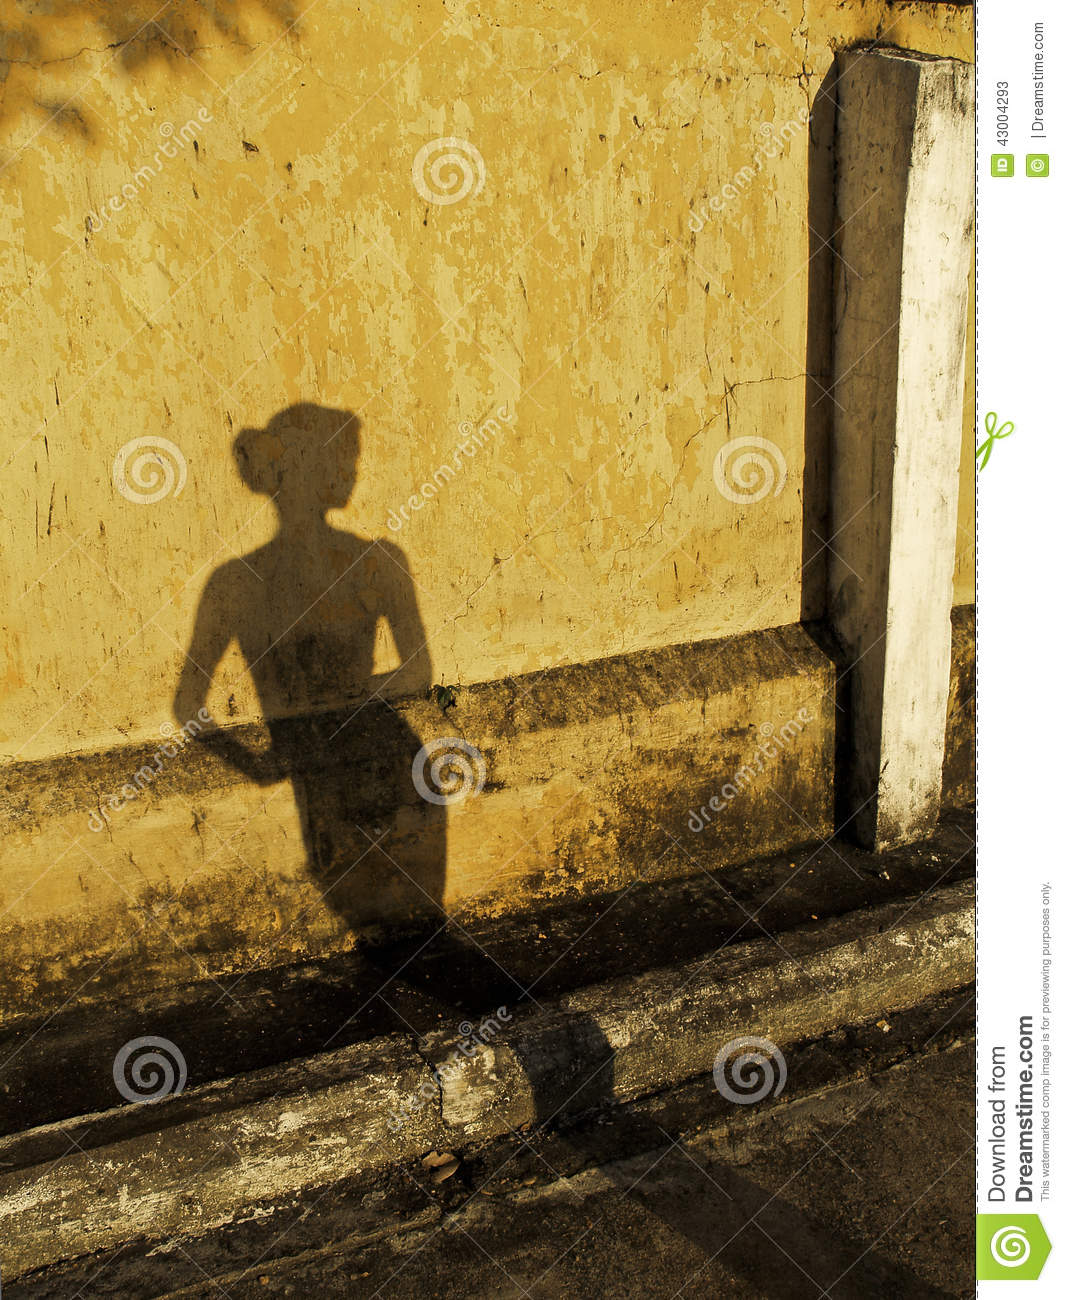 Shadow Woman stock image. Image of wall, faded, kristen - 43004293